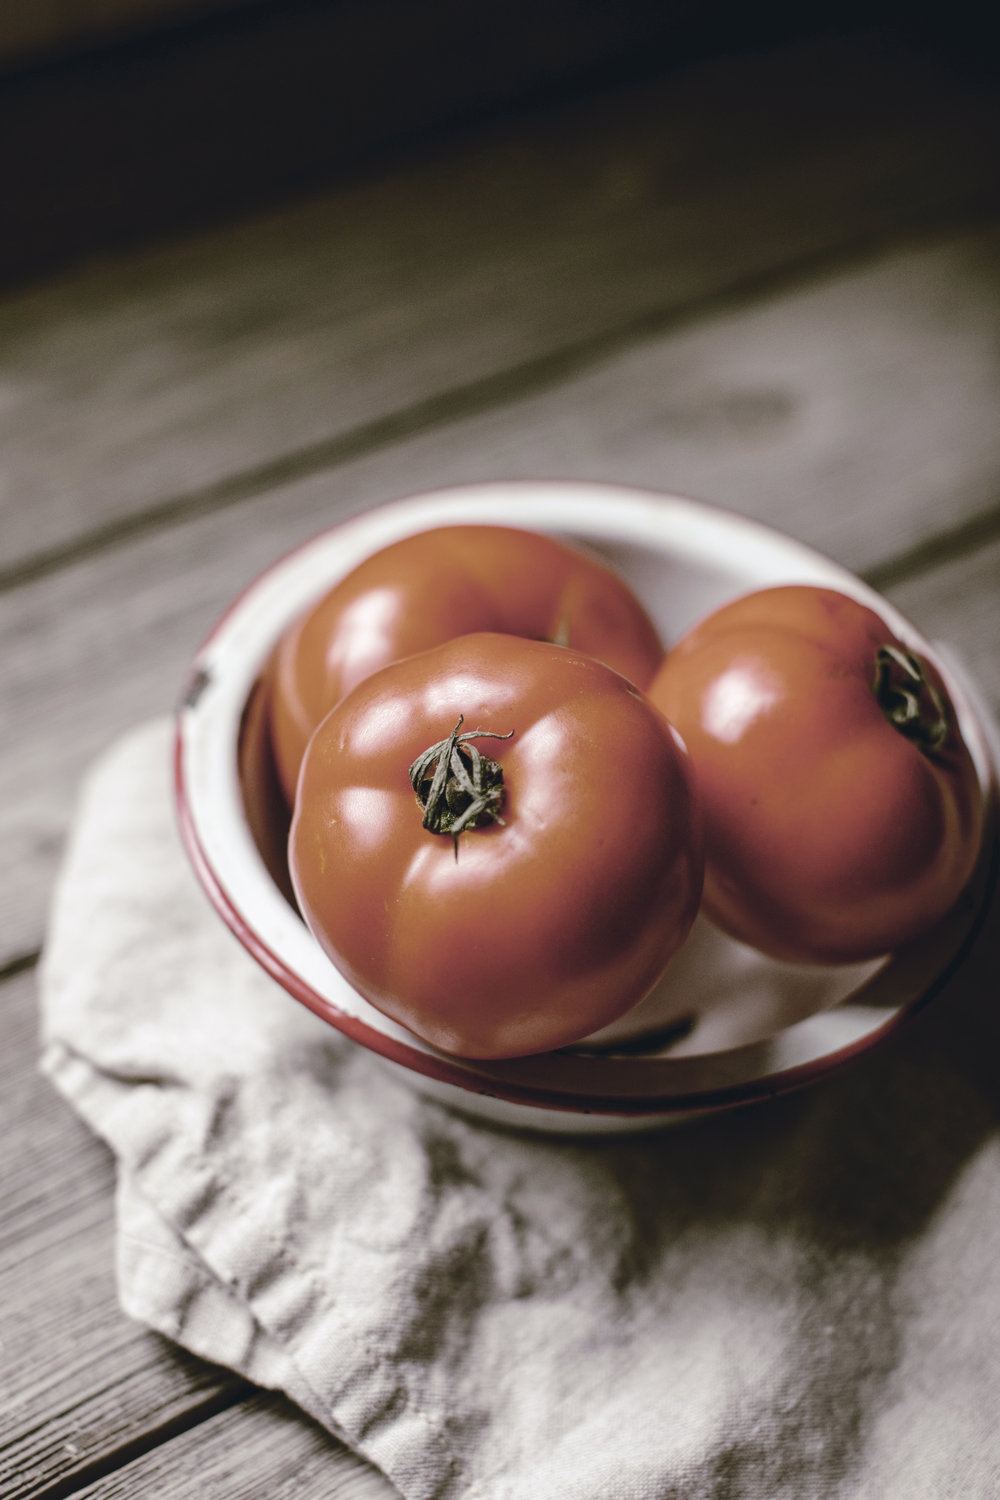 vintage enamelware bowl with perfect tomatoes / heirloomed